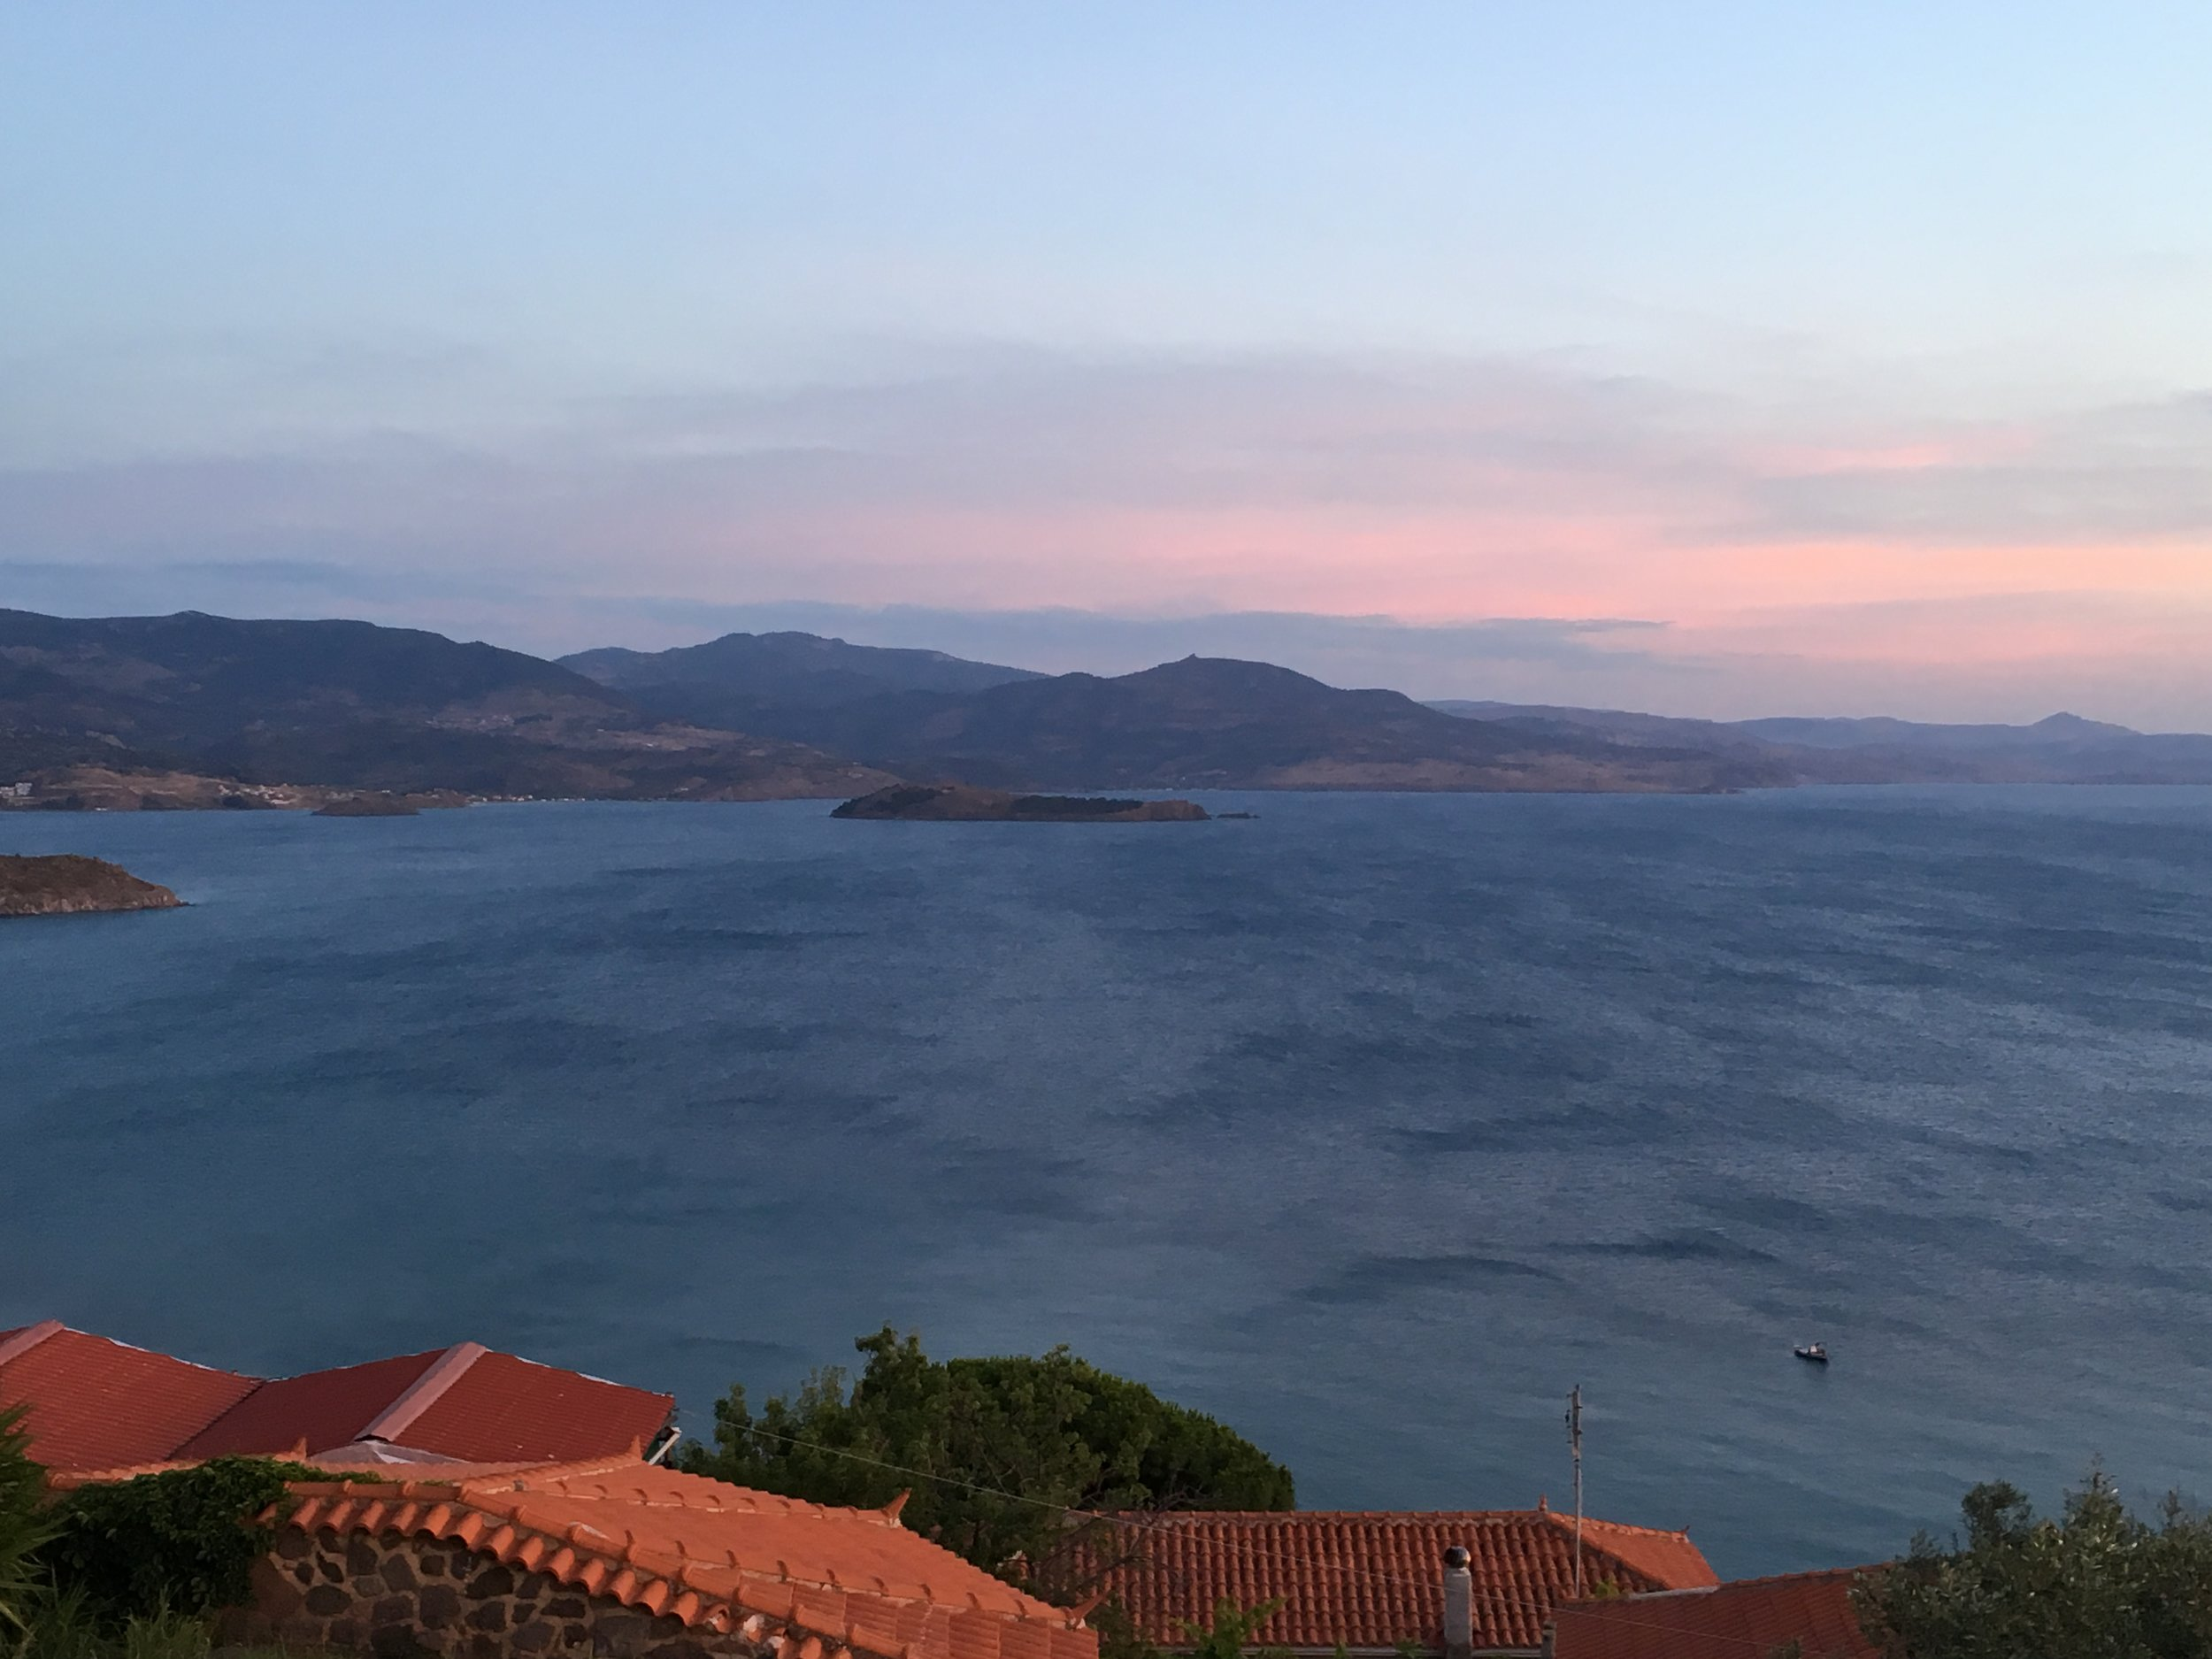 The view of Behram, Turkey, from Molyvos, Lesvos. This is the site of the ancient Greek city of Assos,